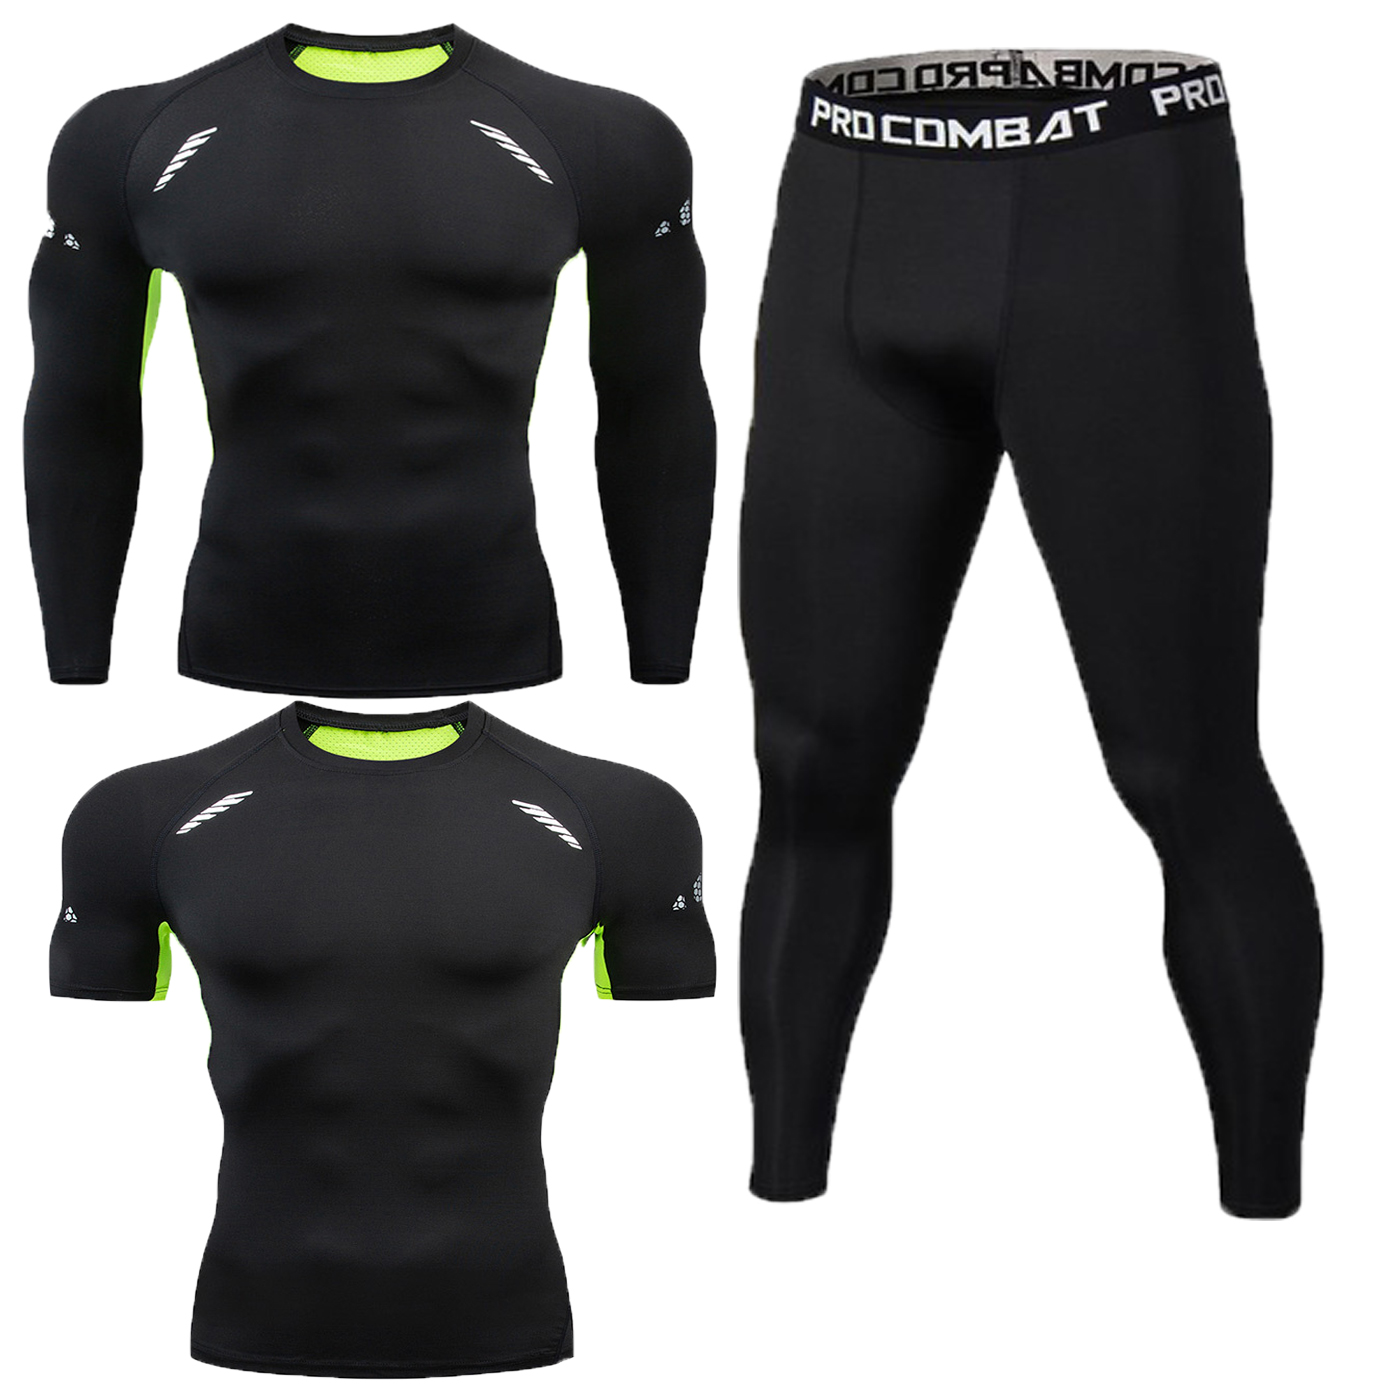 Men's Long-sleeved Short-sleeved T-shirt 3pieces Of Sports Running Shirt Tights Fitness Stretch Training Quick-drying Tights Men